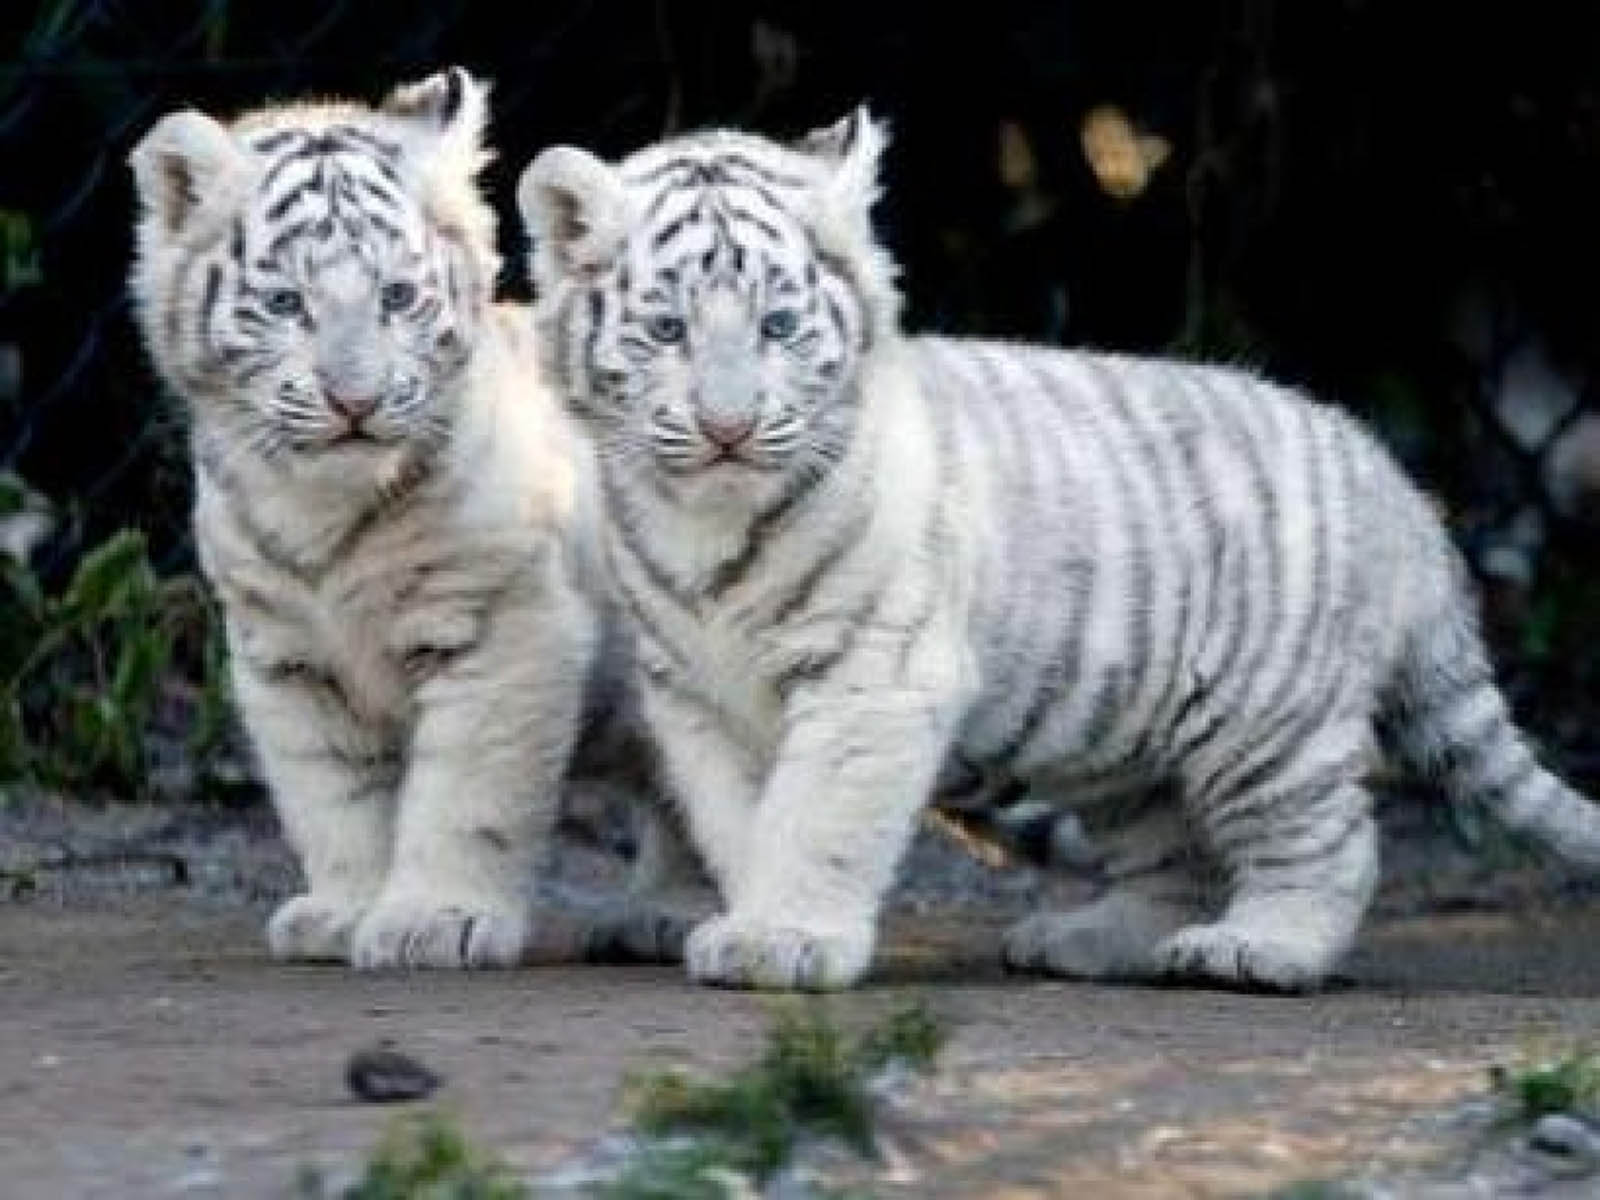 Baby White Tigers Wallpapers - 2013 Wallpapers